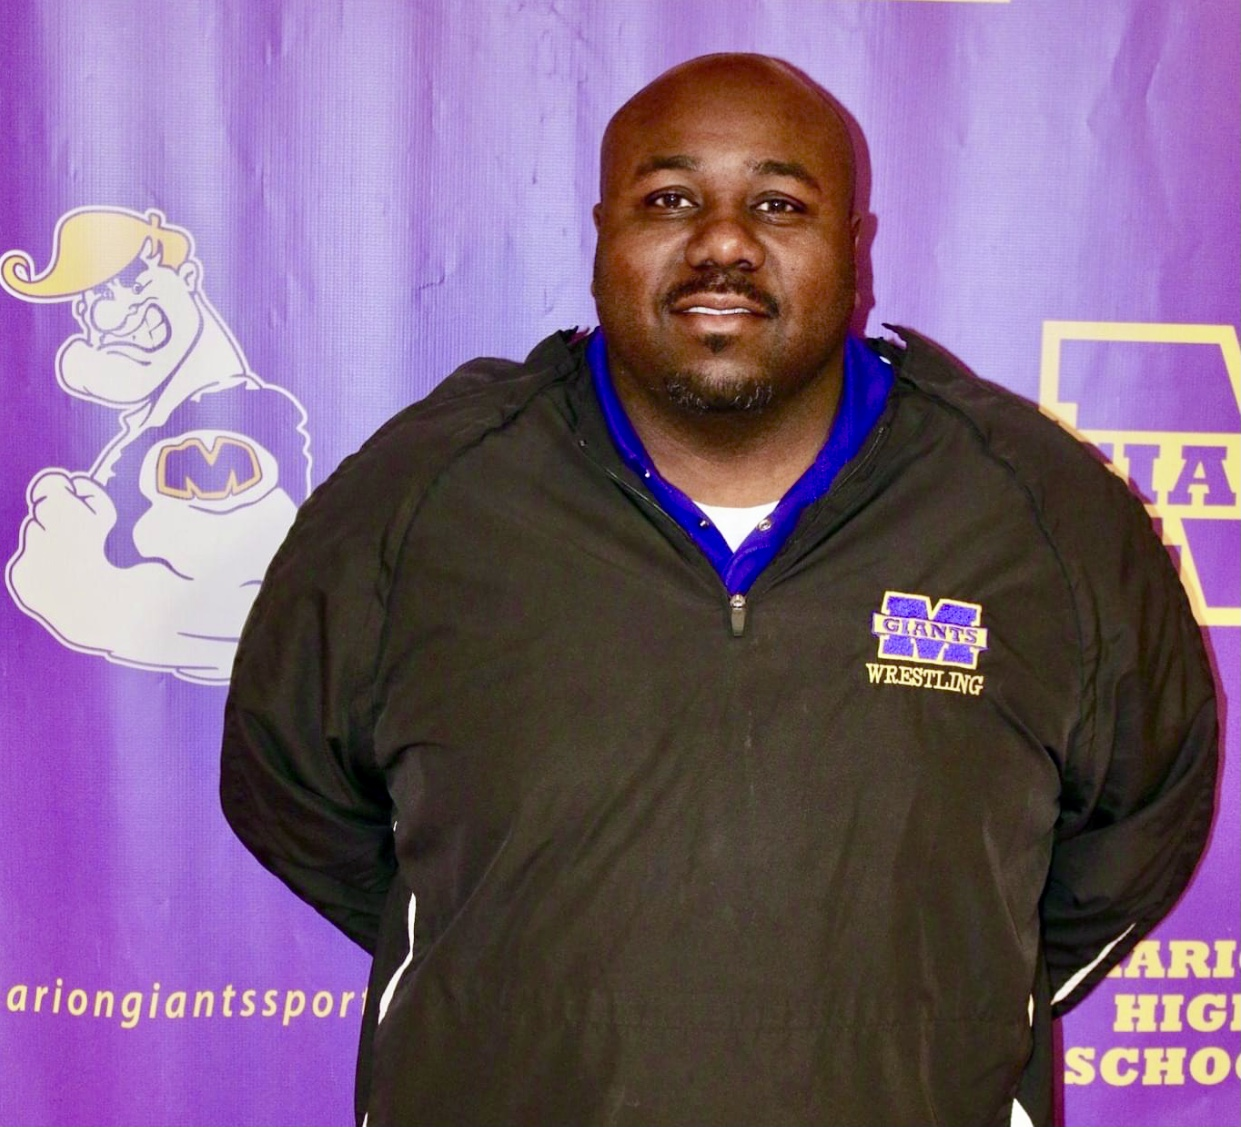 Marion Giants Wrestling Coach Lonnie Johnson named NCC Coach of the Year